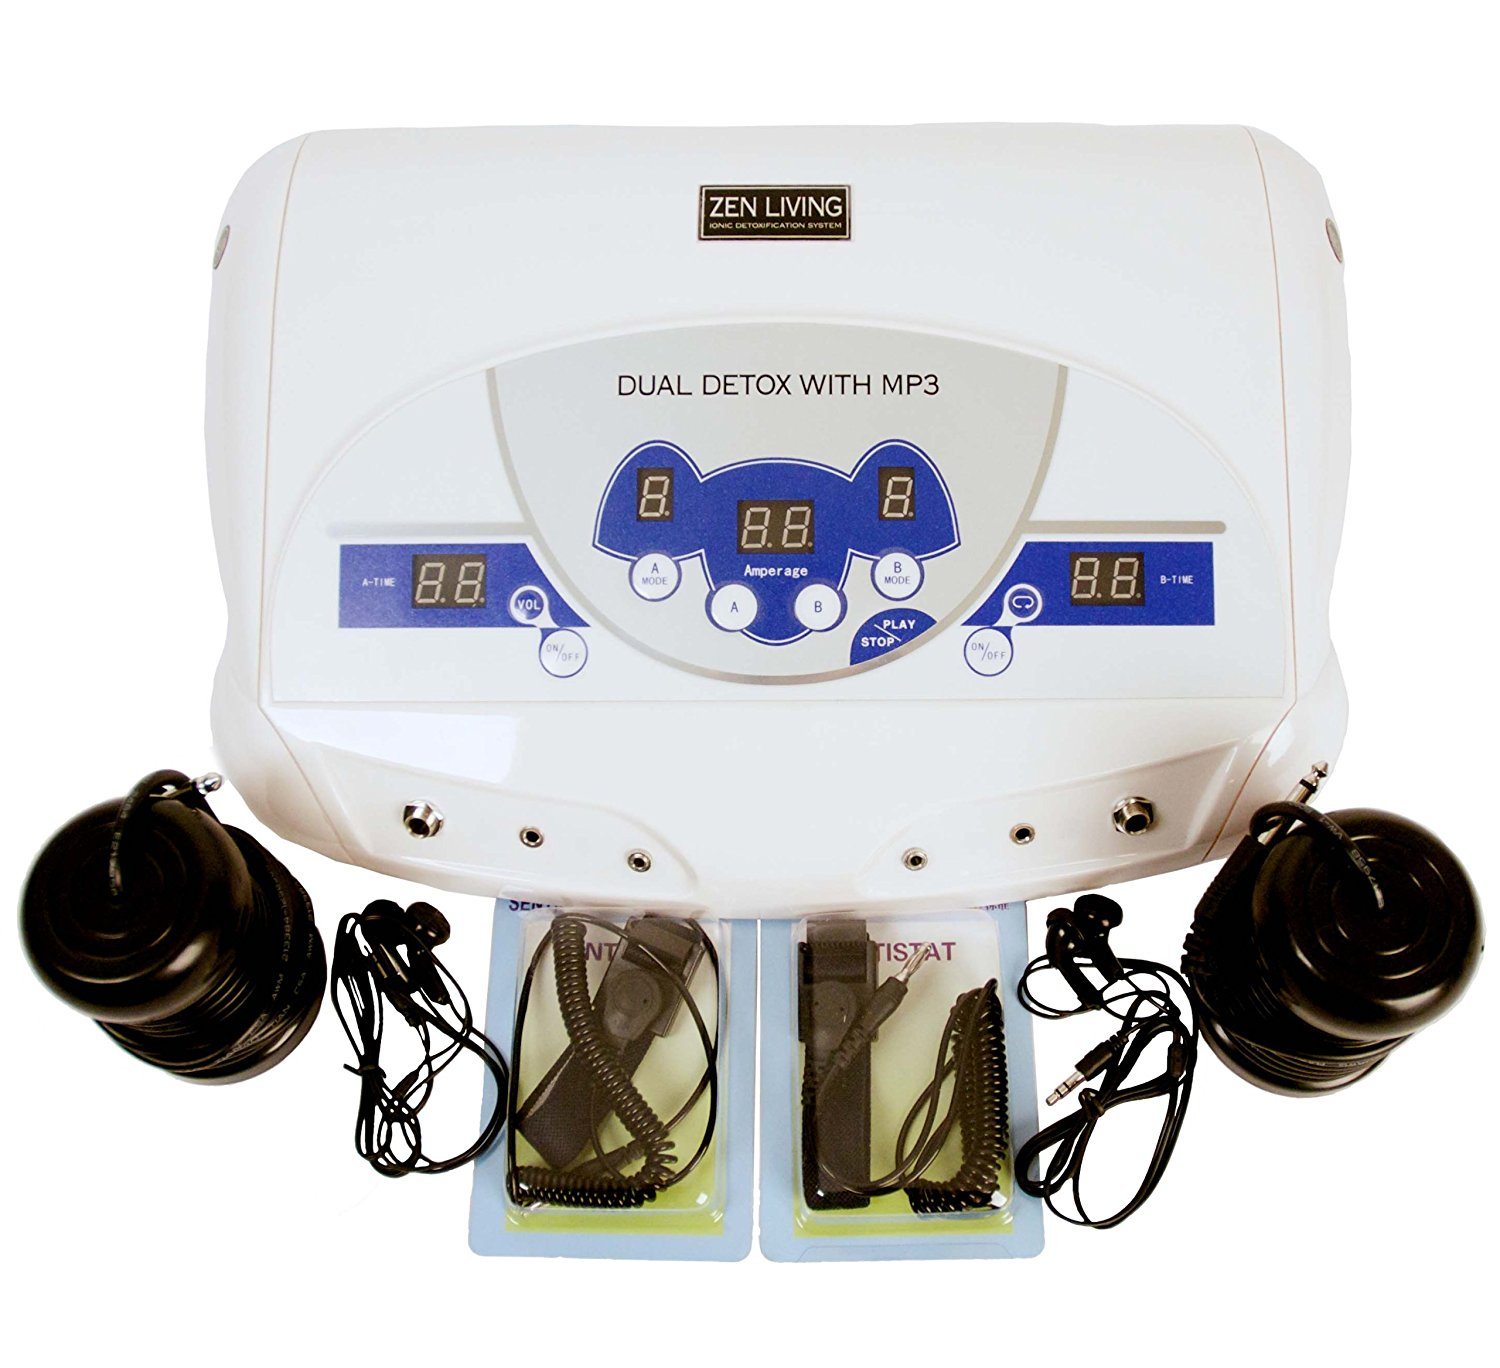 What is cell spa detox machine and cell spa detox machine price?